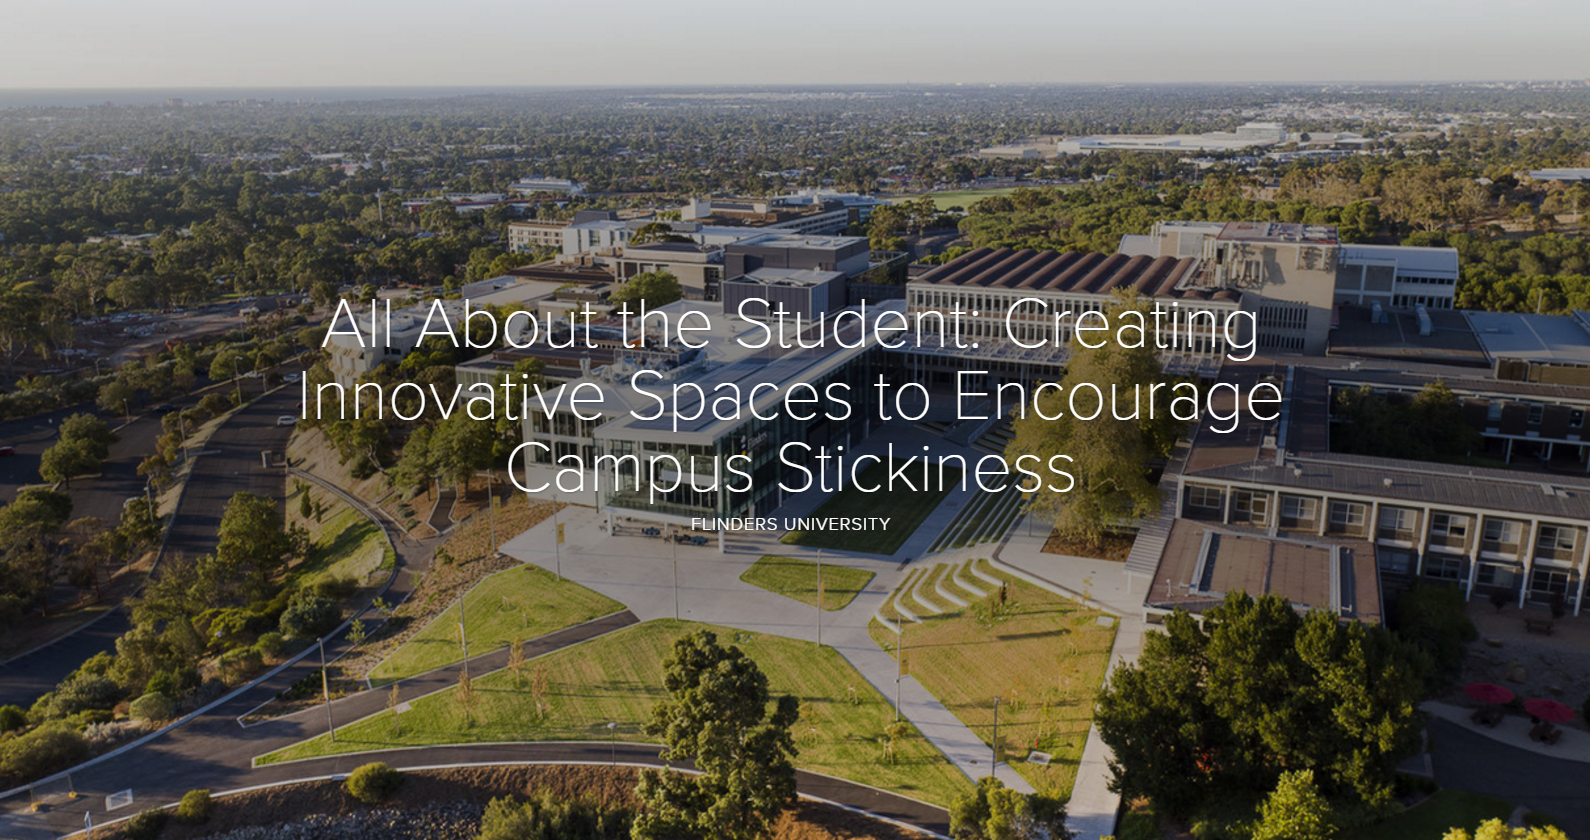 All About the Student: Creating Innovative Spaces to Encourage Campus Stickiness